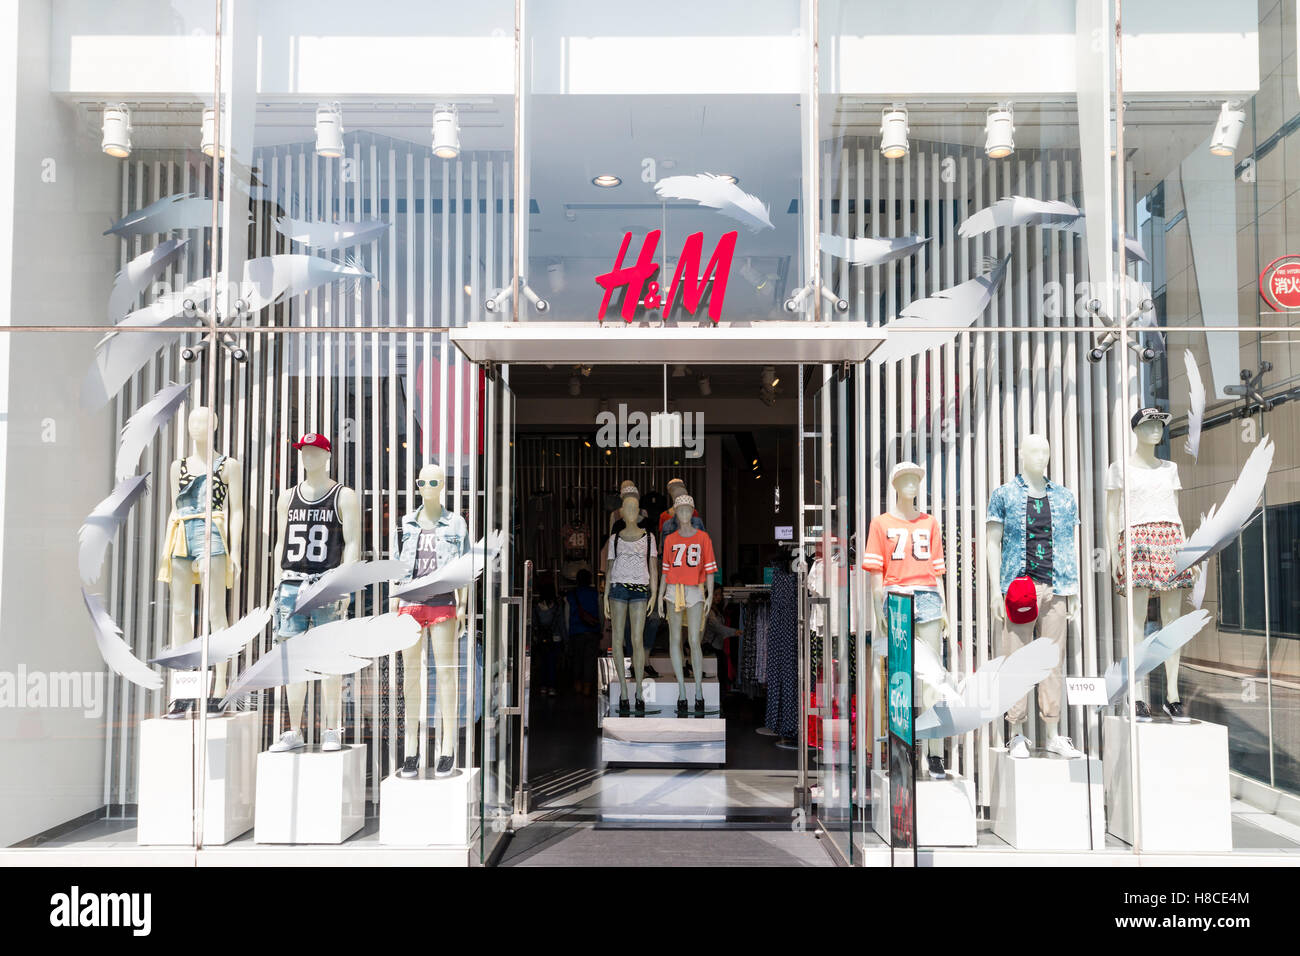 Japan, Tokyo, Harajuku. Fashionable H&M chain clothing store entrance and store front, with white feathers theme - Stock Image